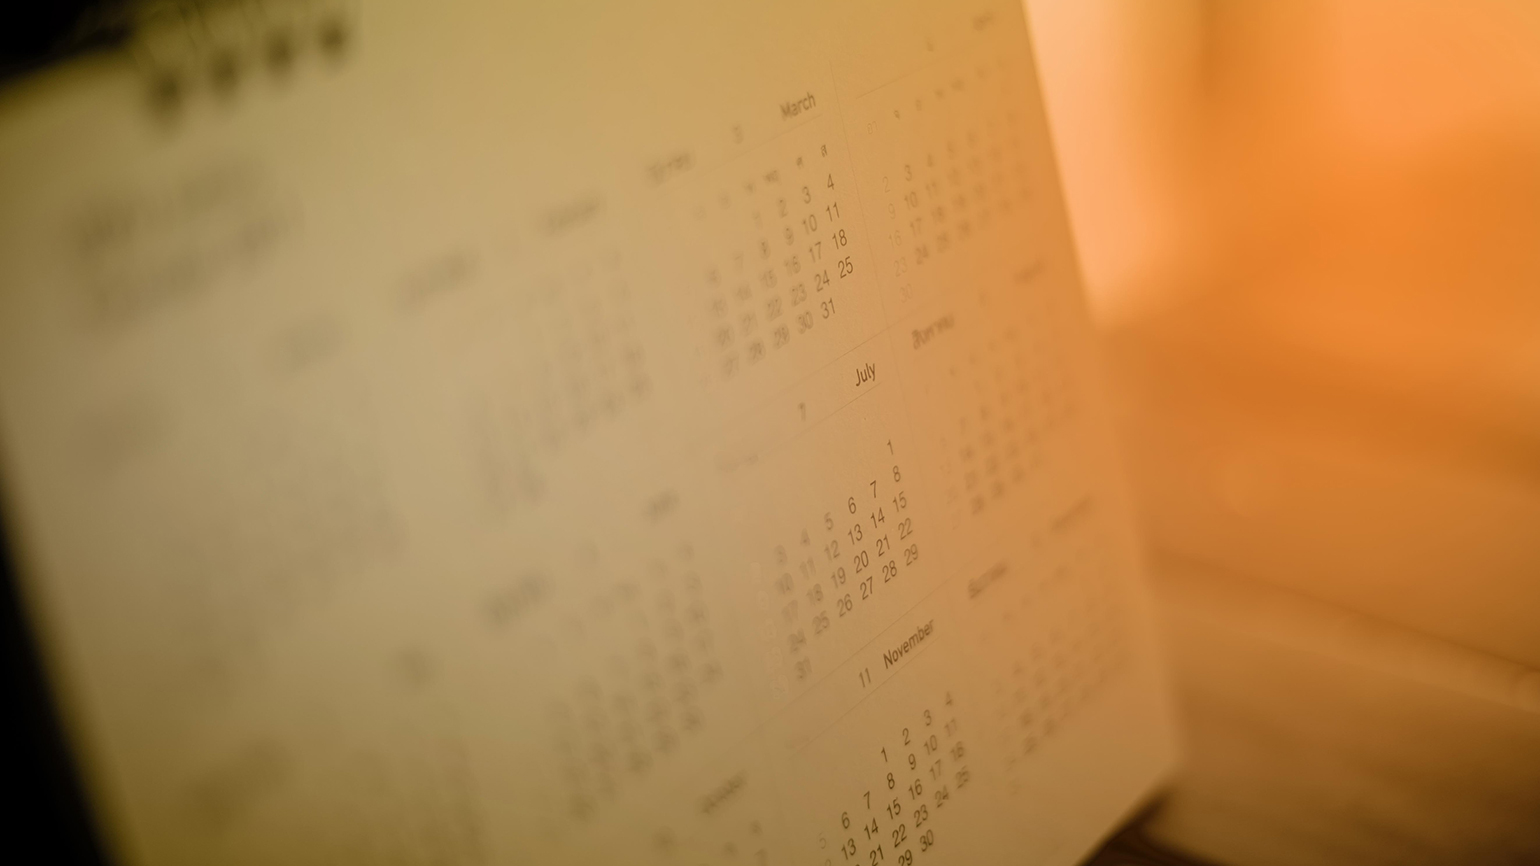 The pages of a calendar